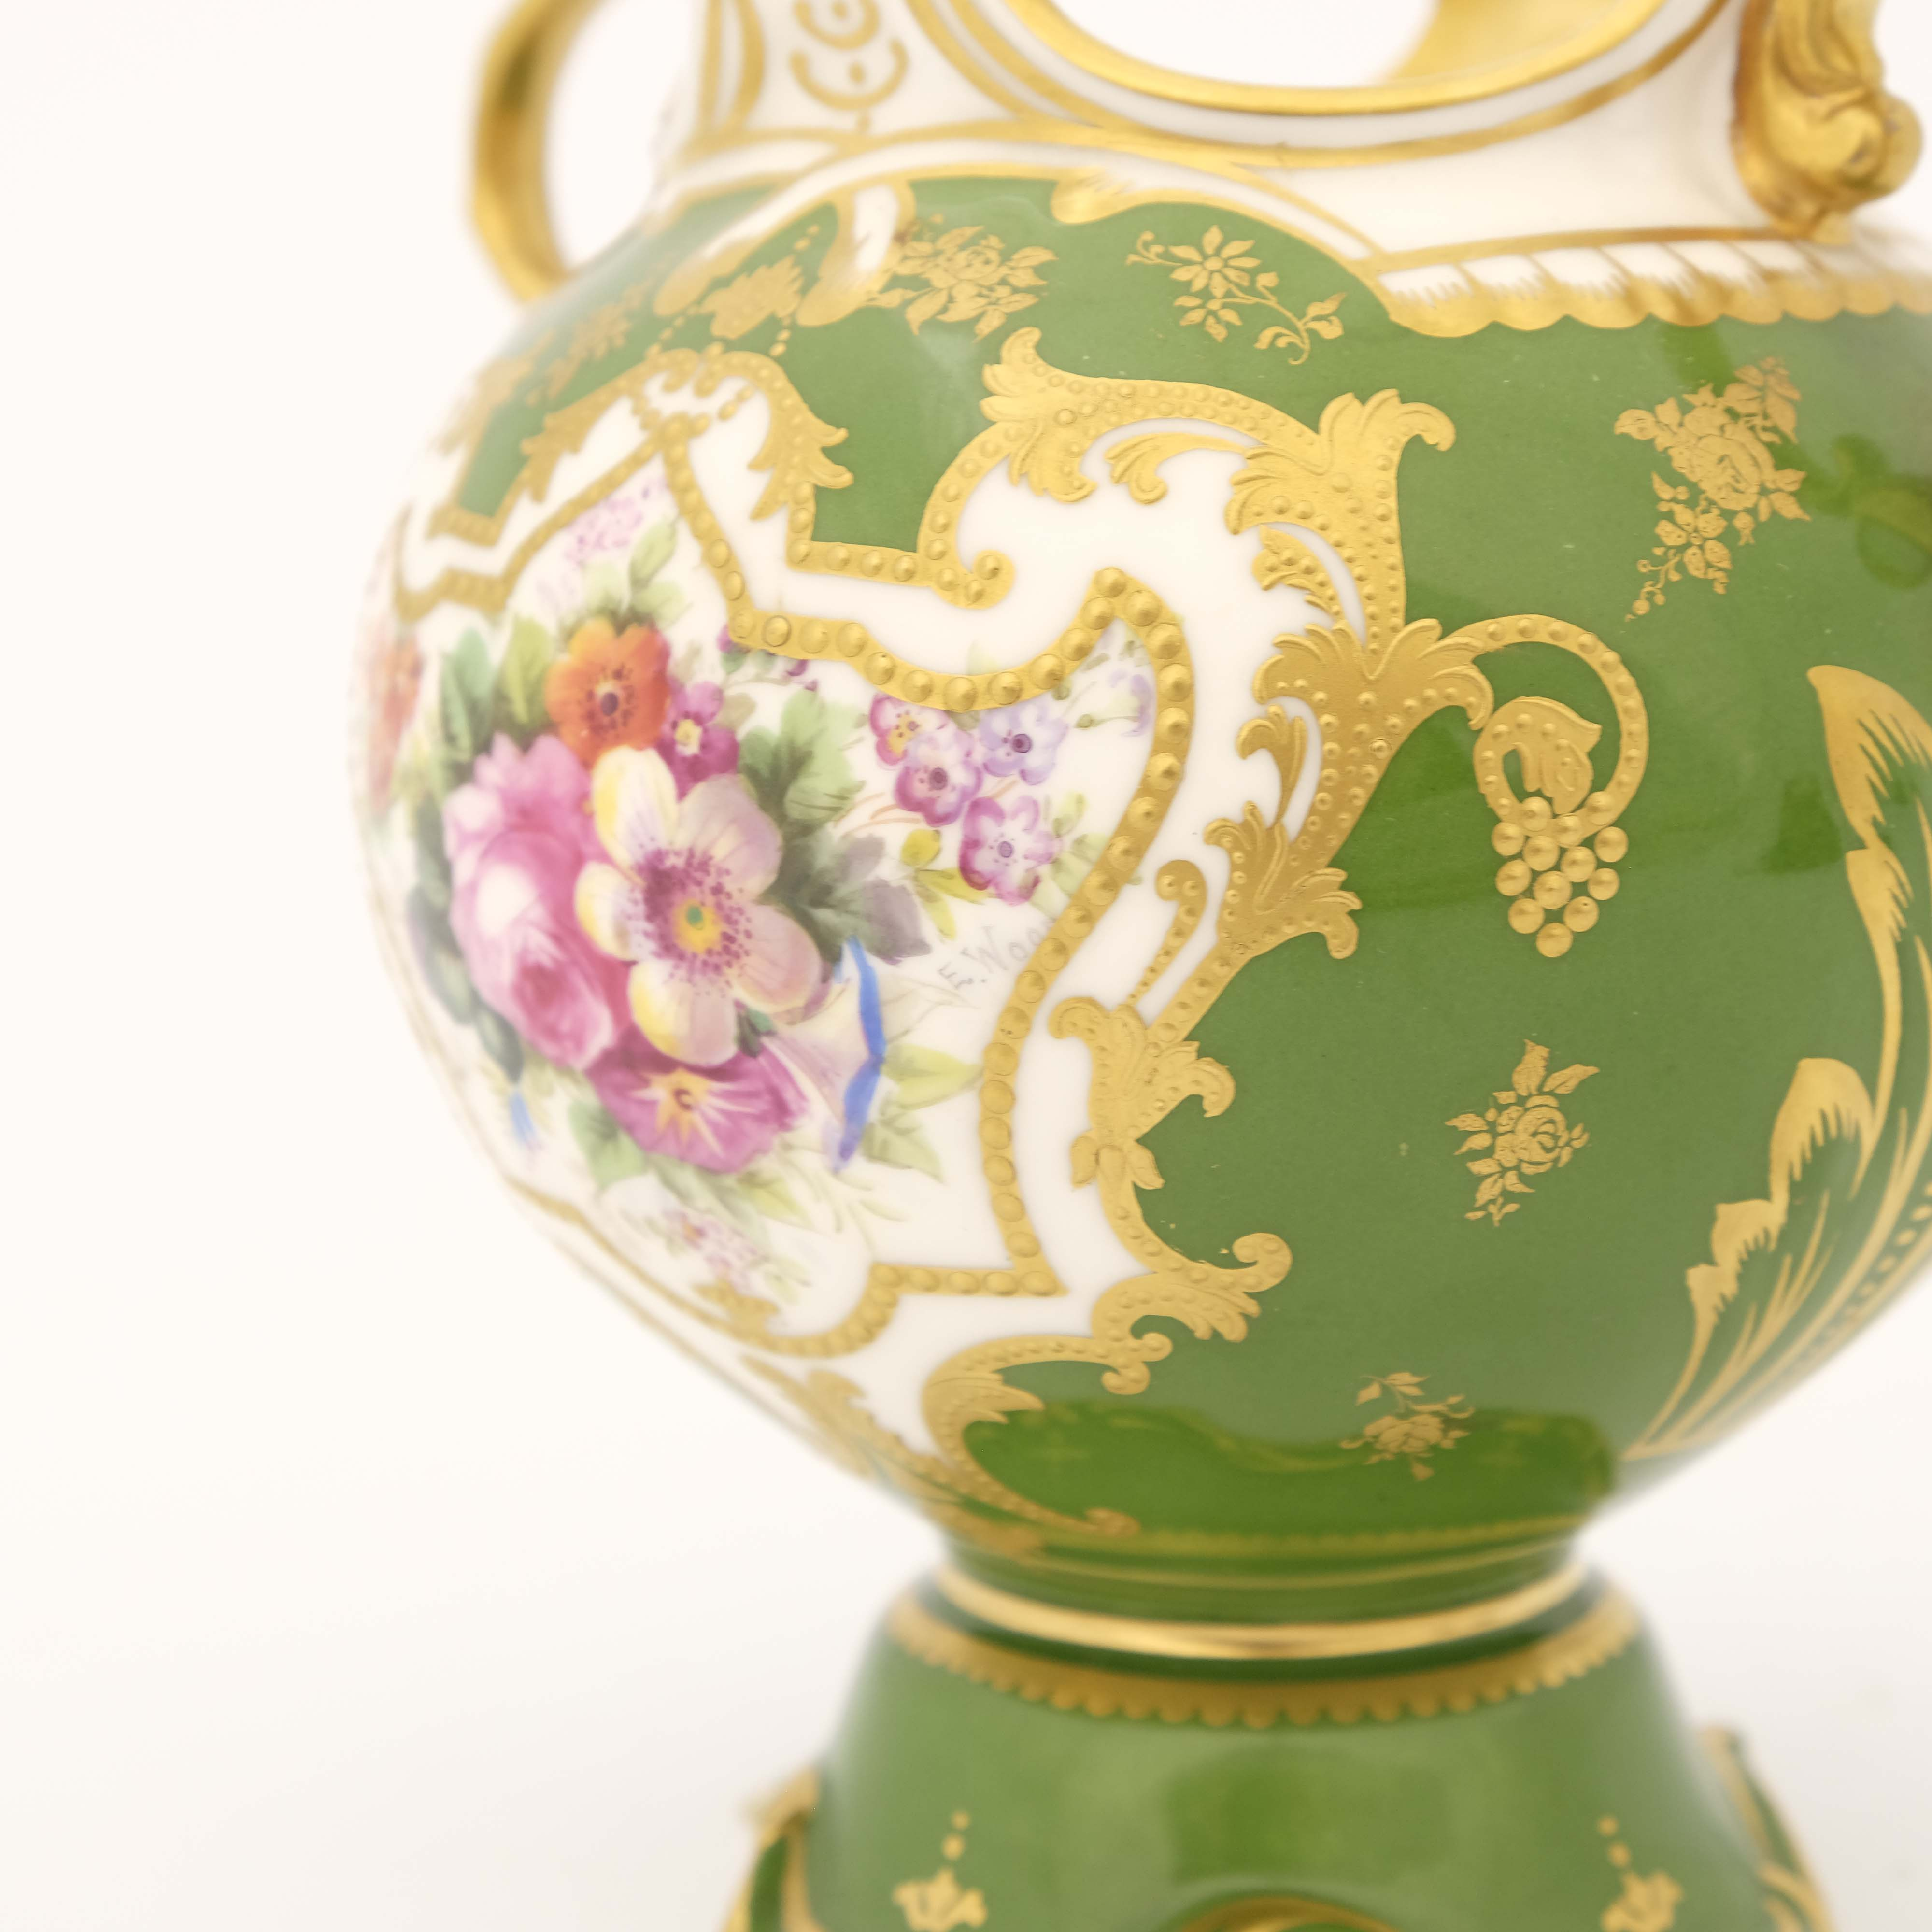 Edwin Wood for Royal Doulton, a floral painted twin handled vase - Image 6 of 7